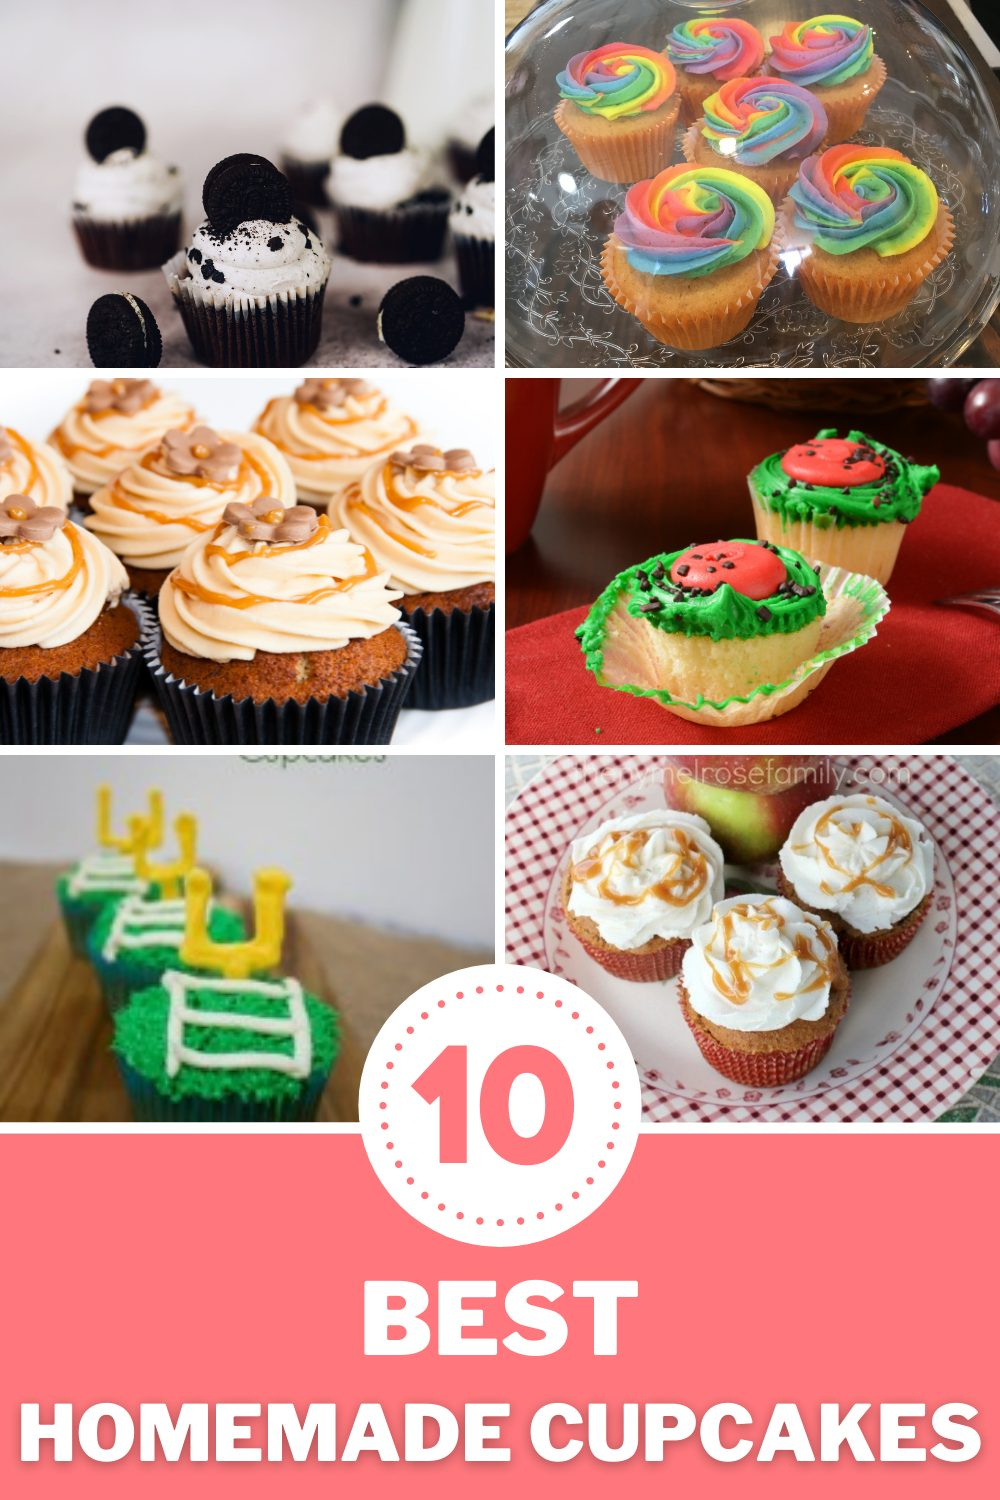 Our best of the best cupcake recipes for you and your family. Super yummy, easy to make and perfect for any occasion. #cupcakerecipes #bestcupcakes #homemade #nymelrosefamily via @jennymelrose